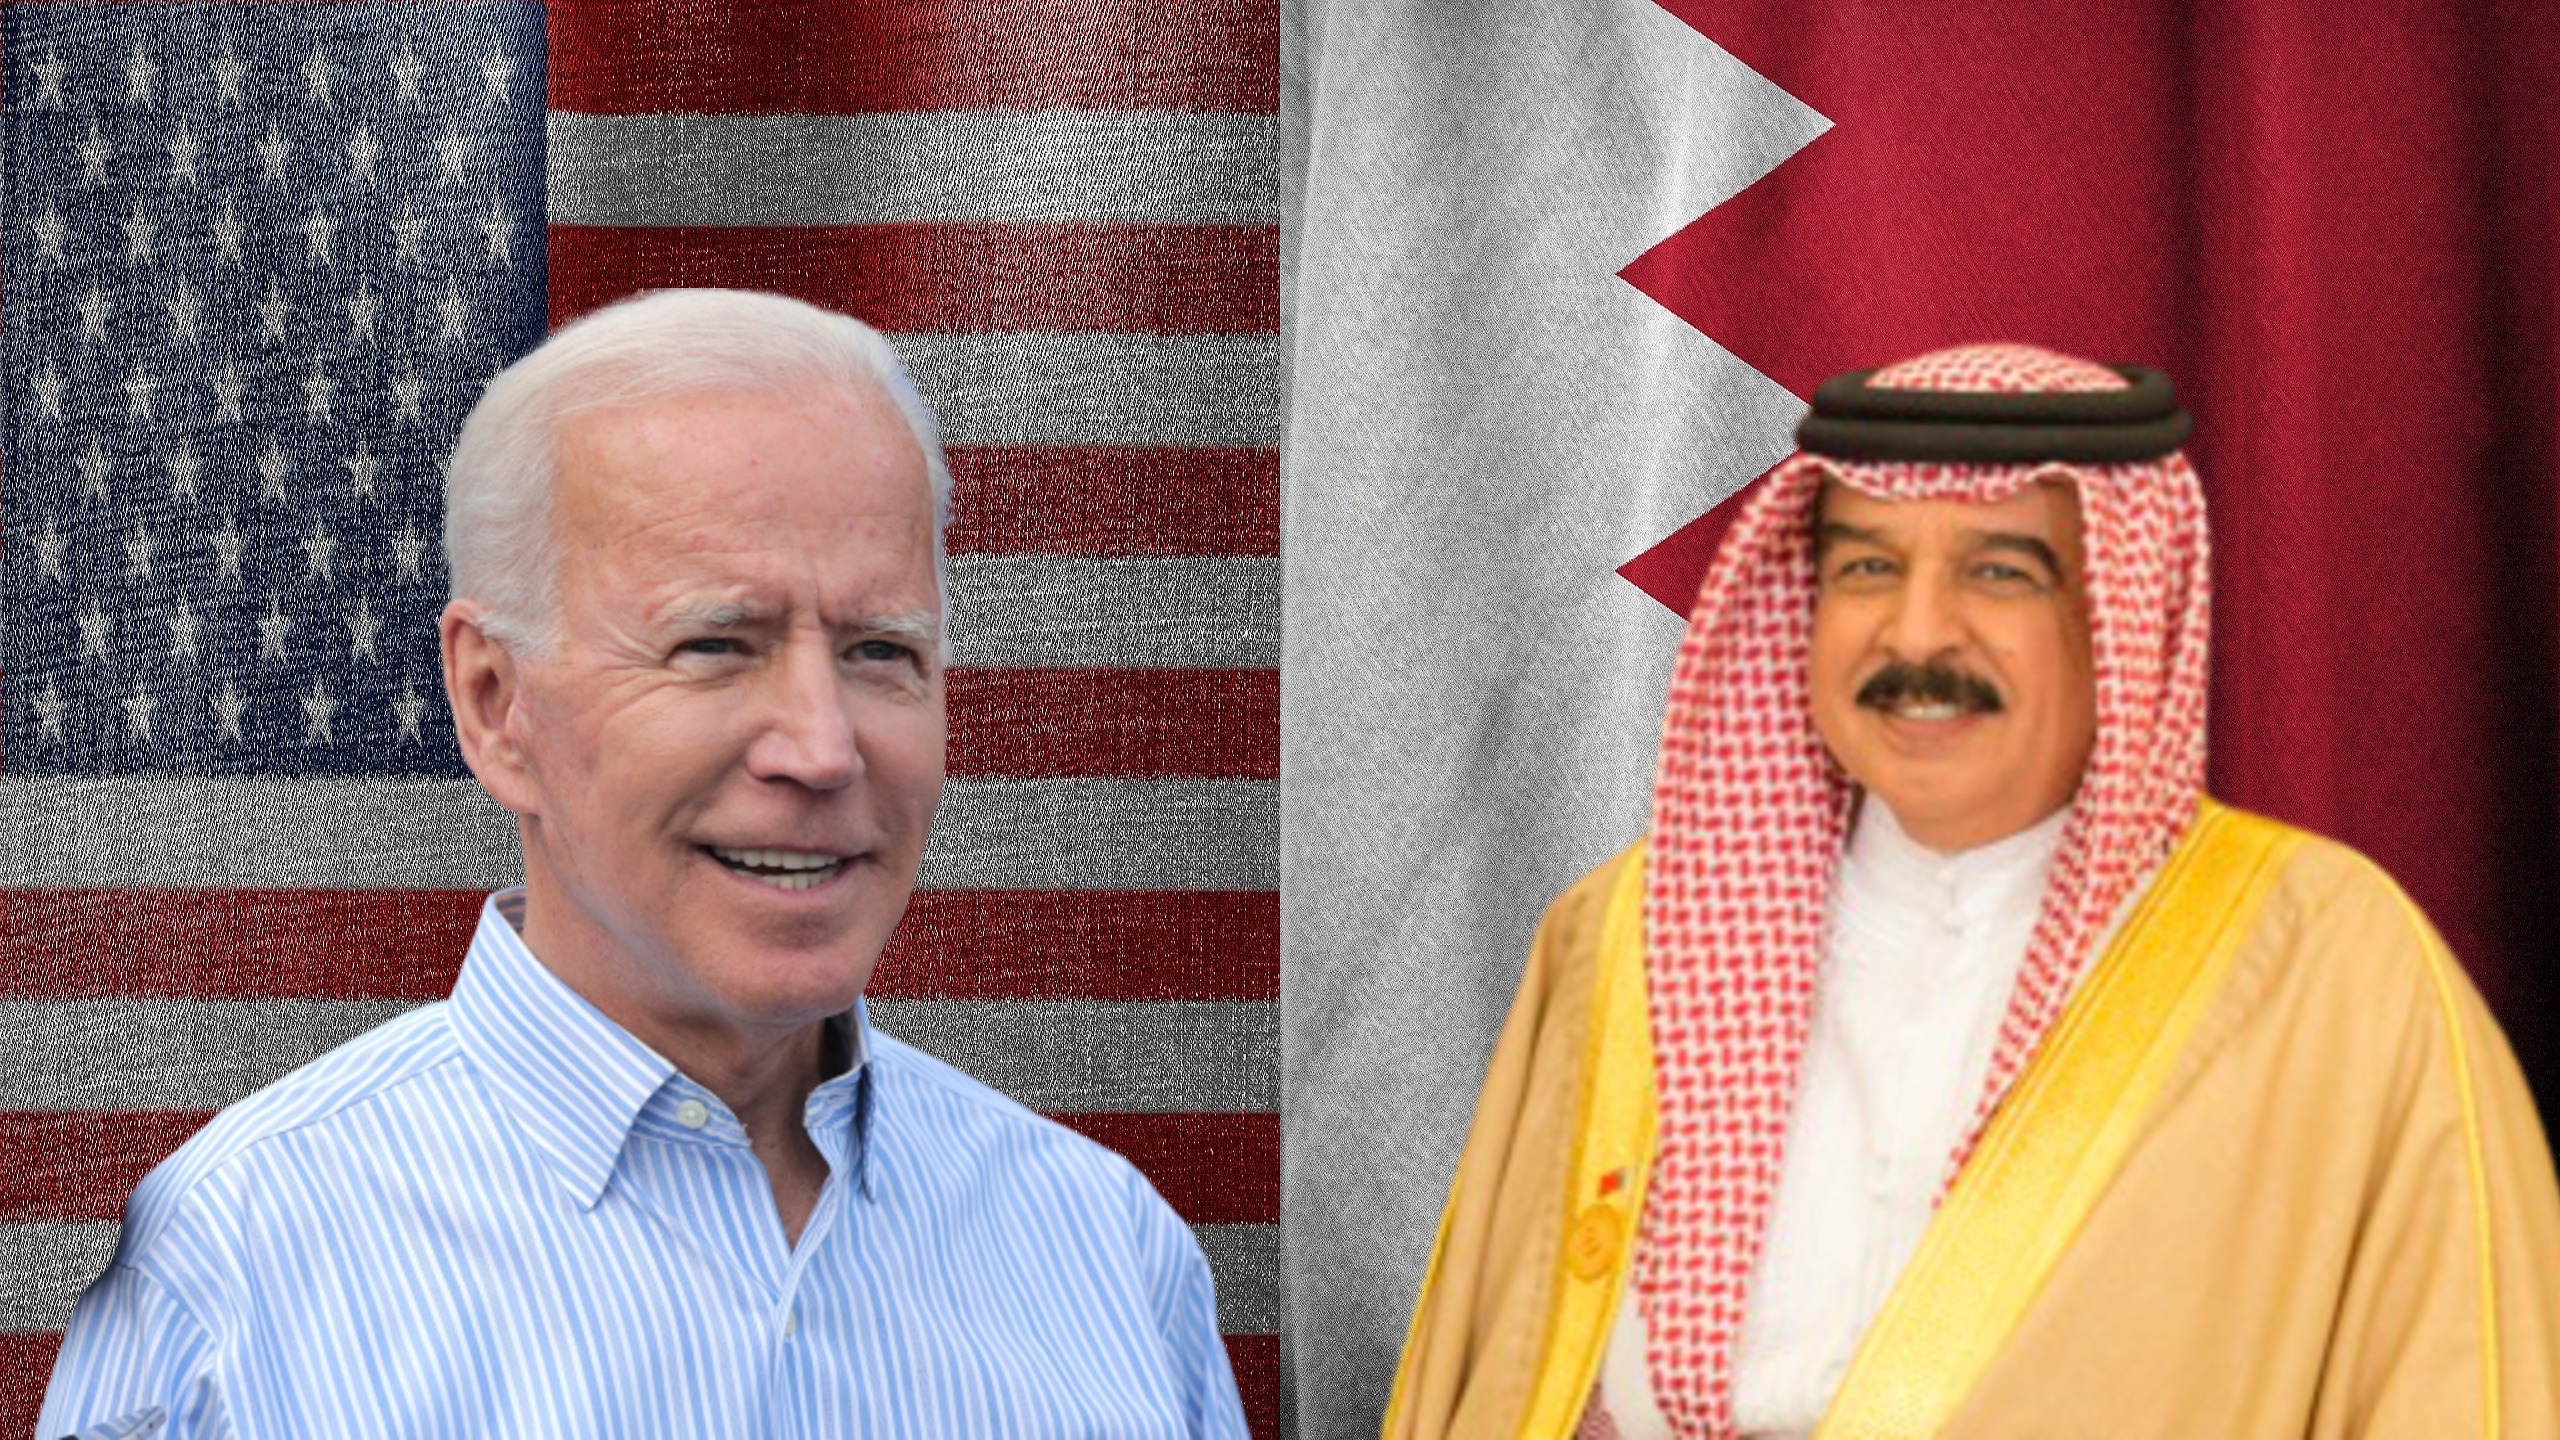 Bahraini Defense Cmte Chair to The Media Line: Biden Should End Iran's 'Interference' in Arab Gulf States